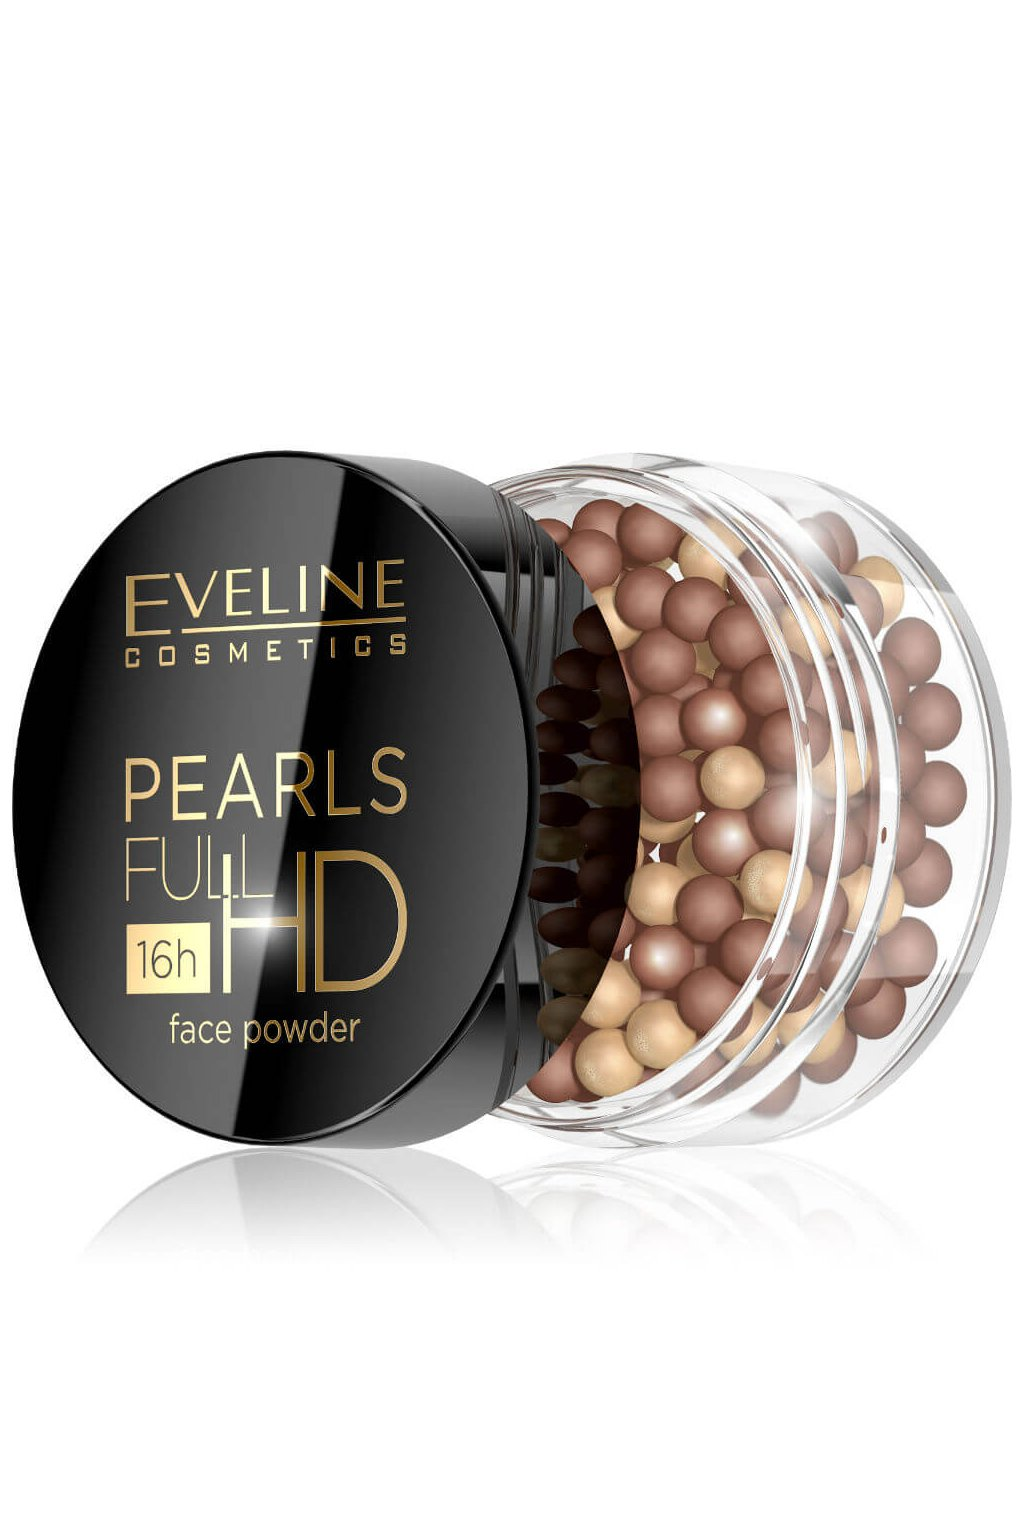 eveline cosmetics full hd pearls barevny pudr bronzing 20g